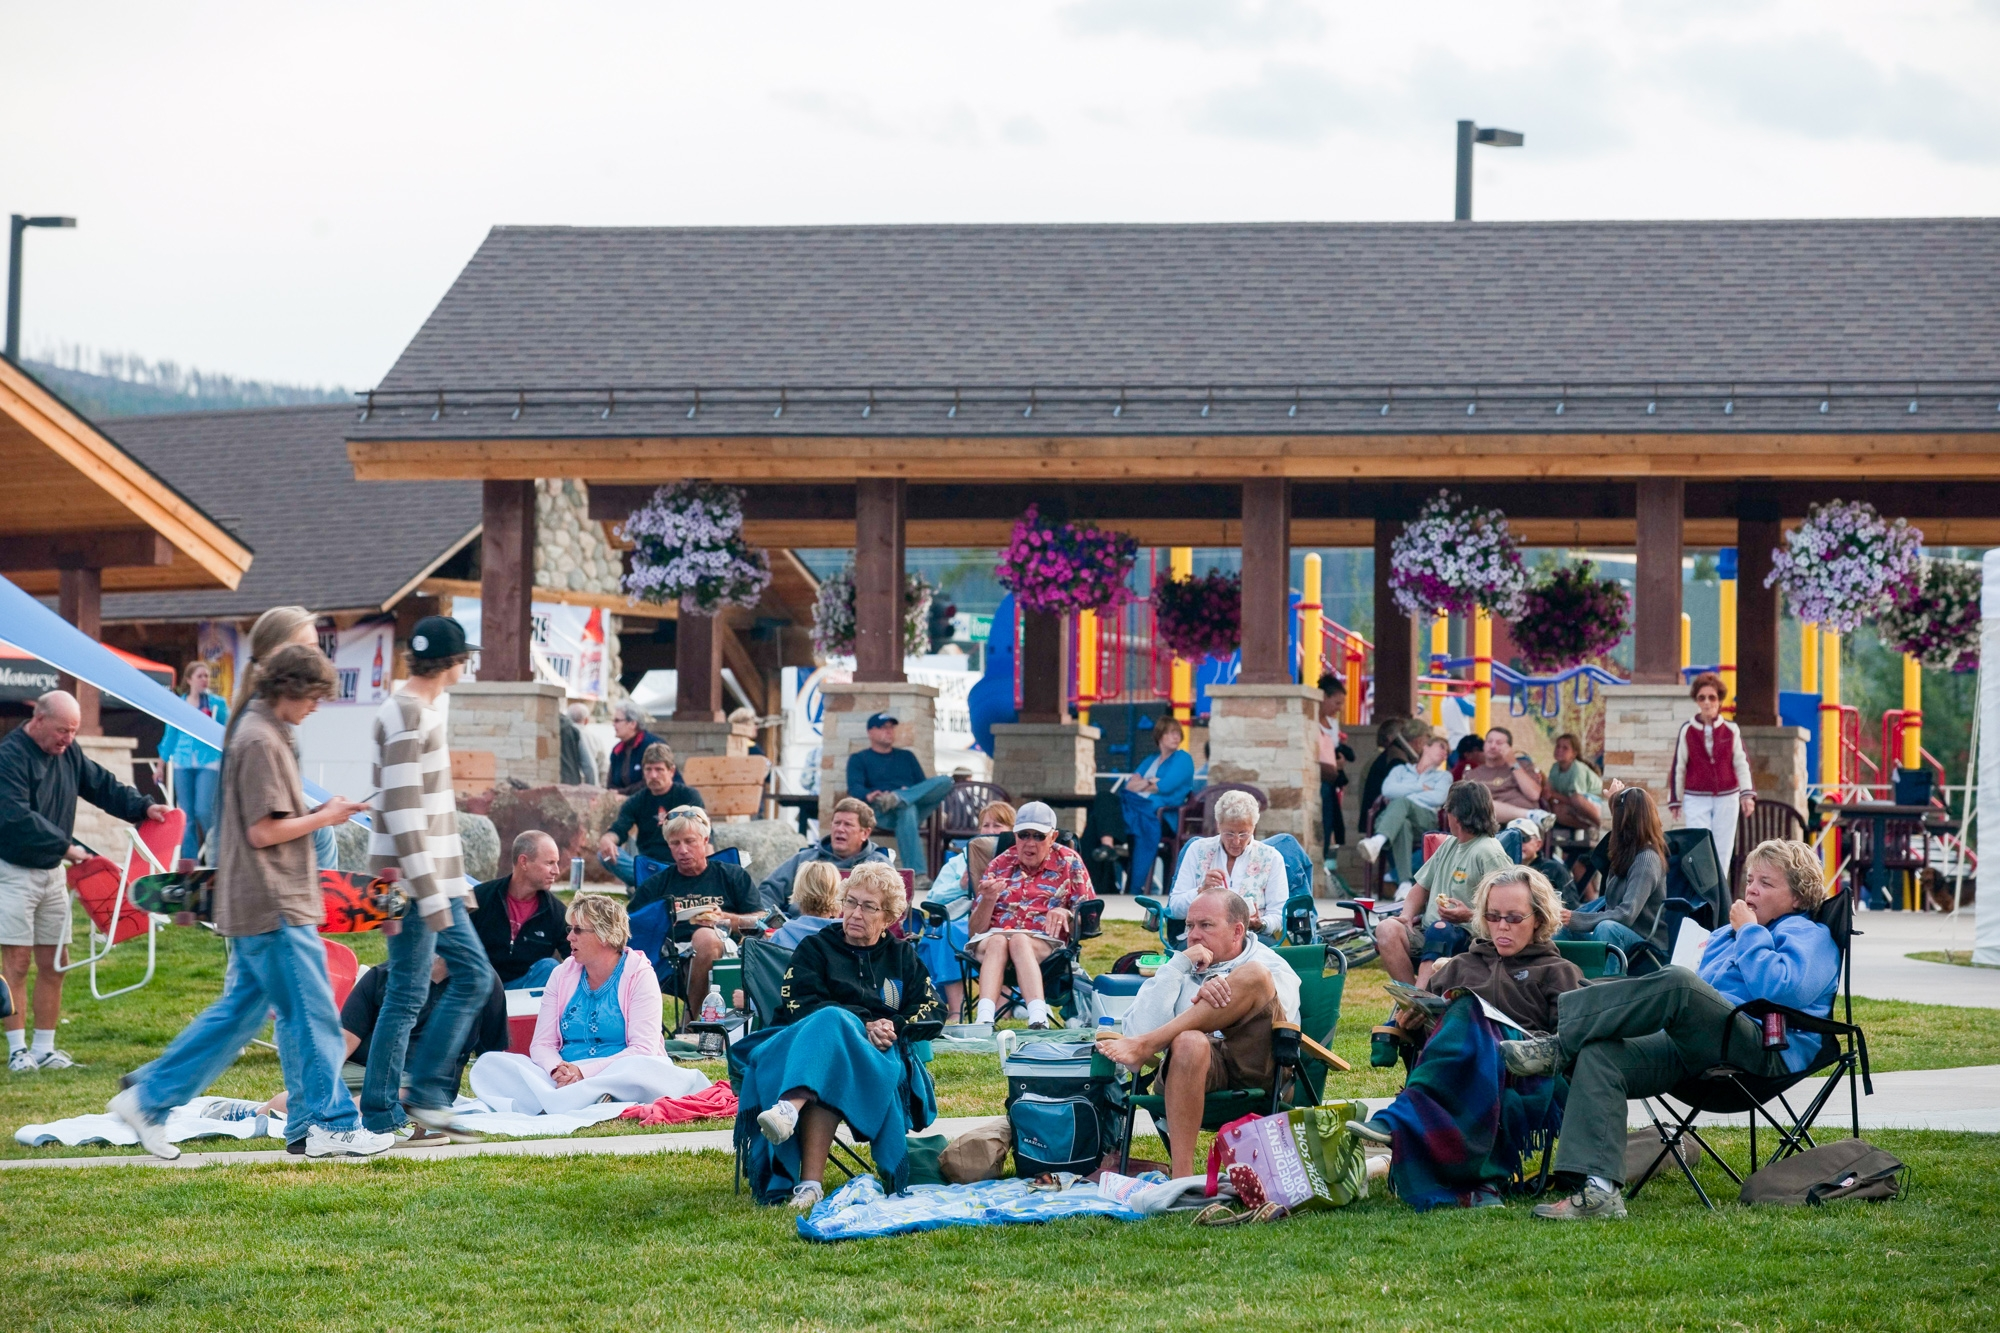 The audience of kids and adults await the music concert to begin playing in the amphitheater stage area